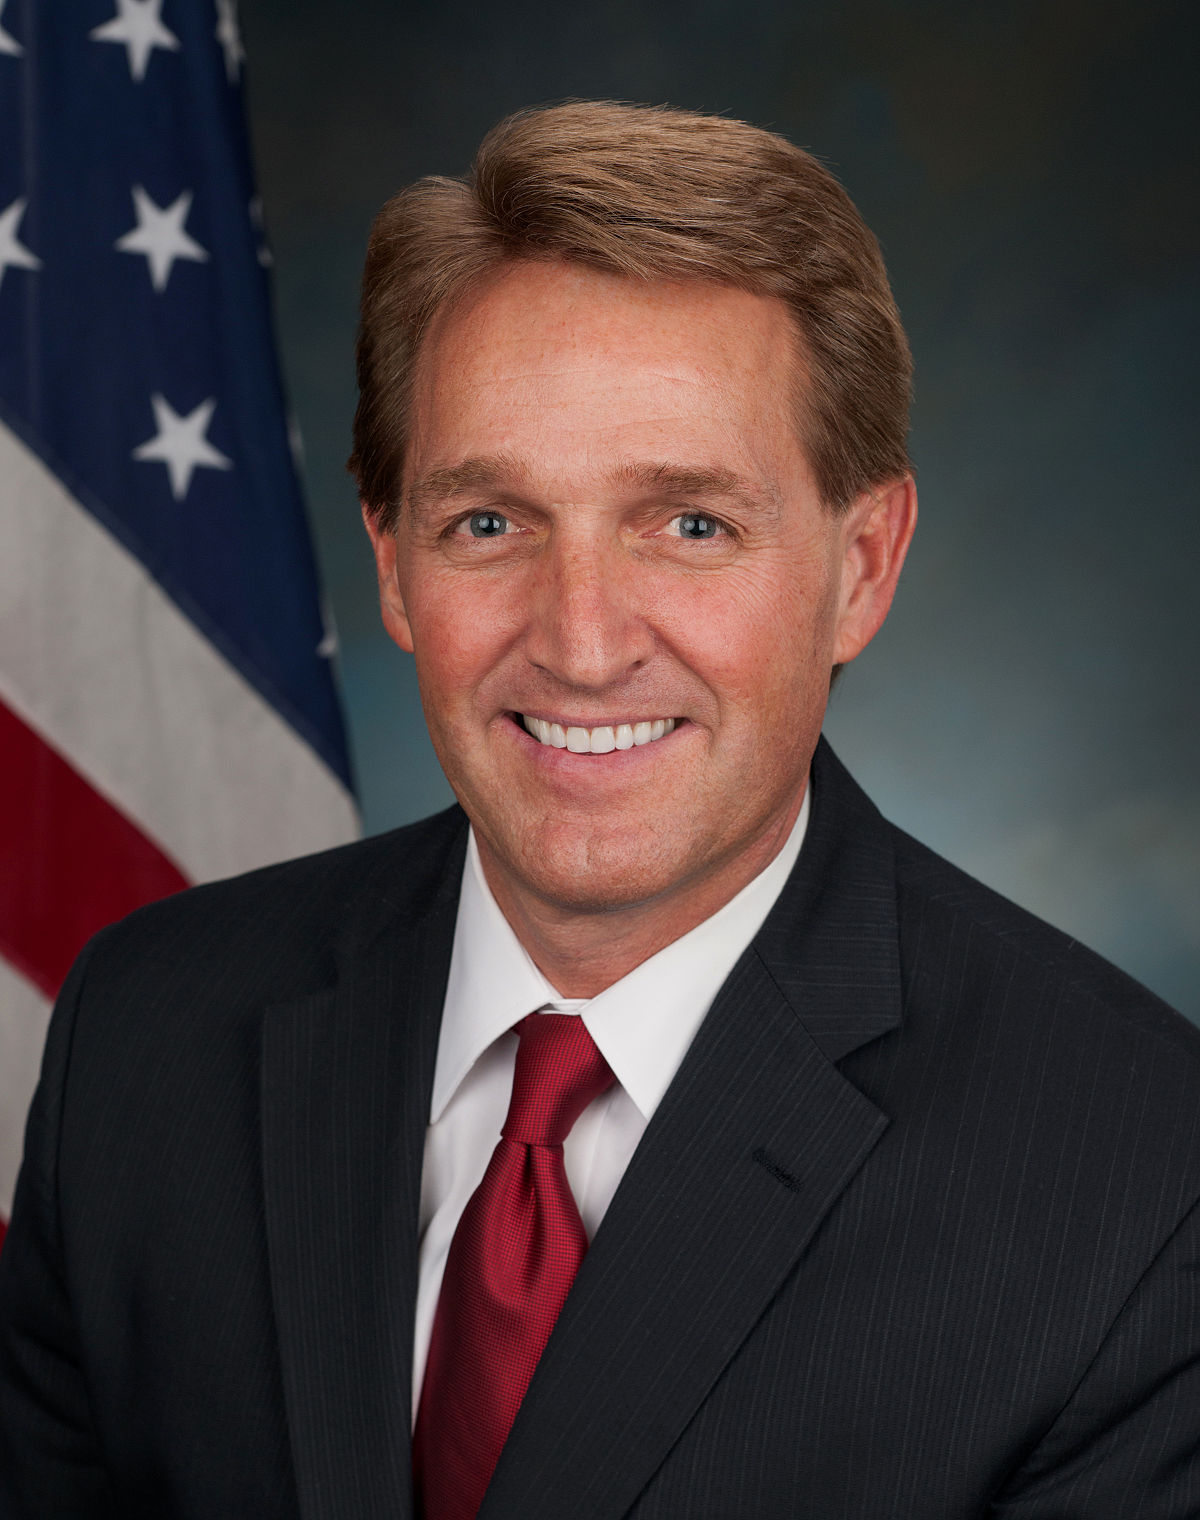 Jeff Flake - Wikipedia